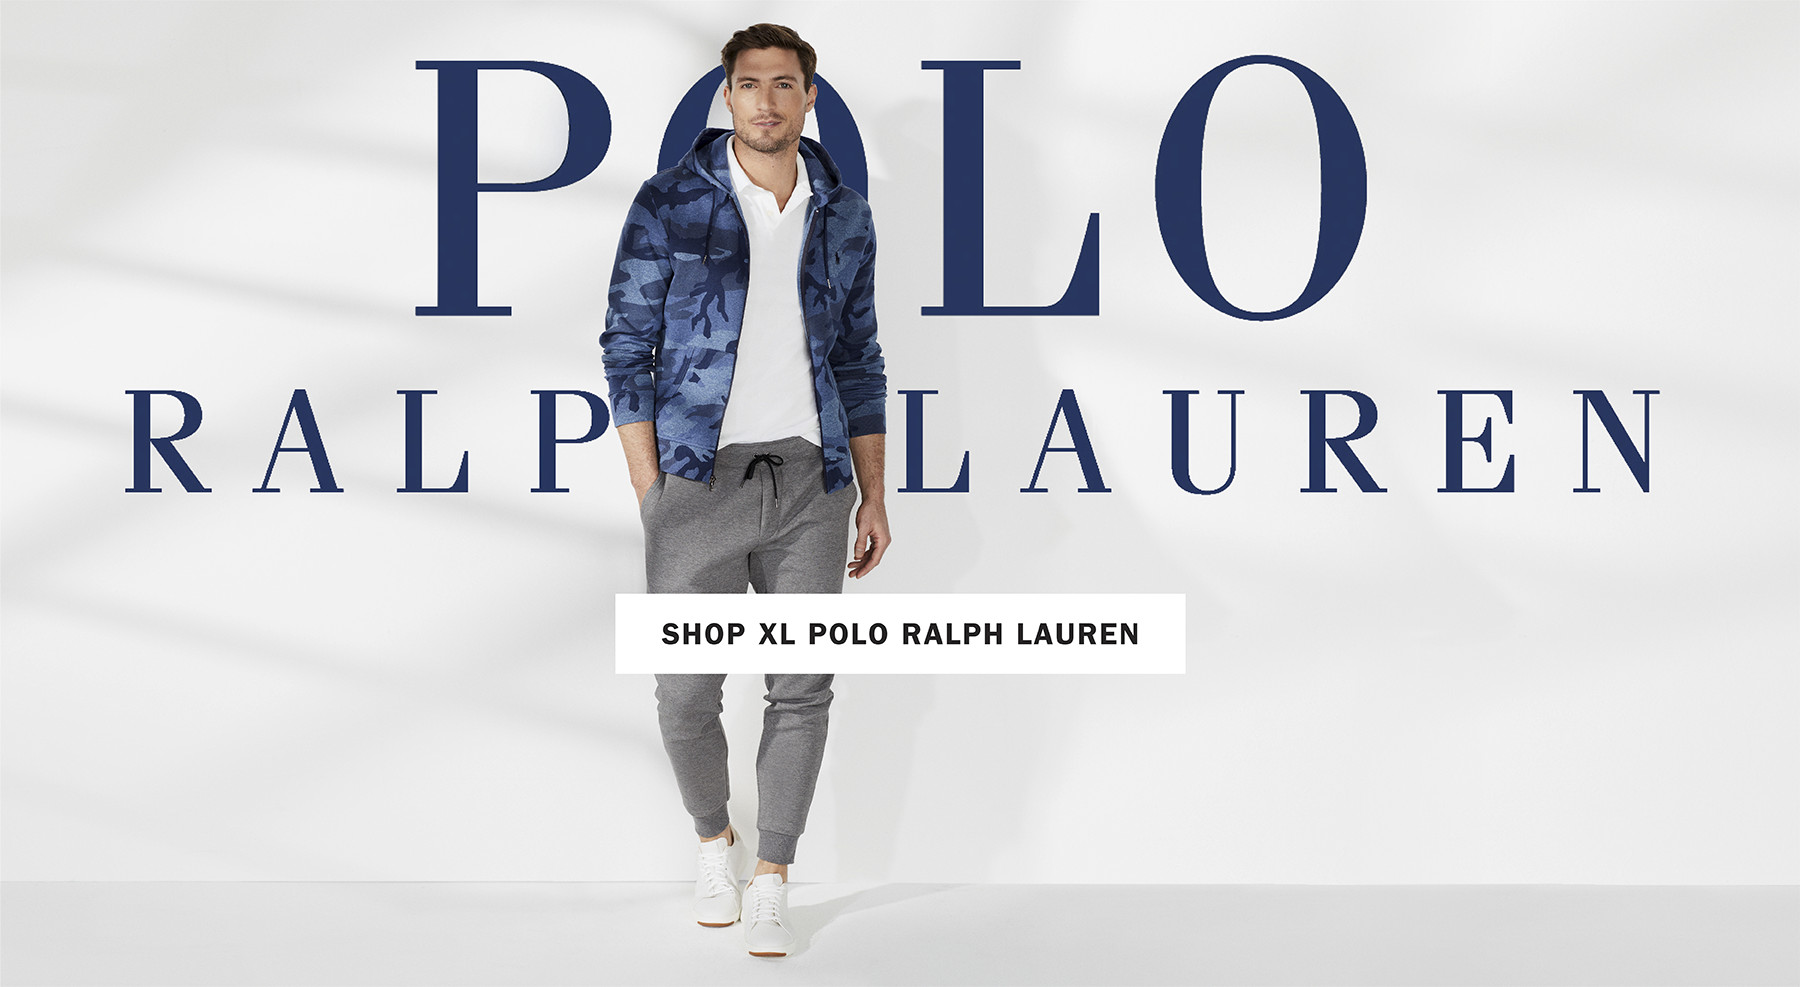 POLO RALPH LAUREN | SHOP XL POLO RALPH LAUREN